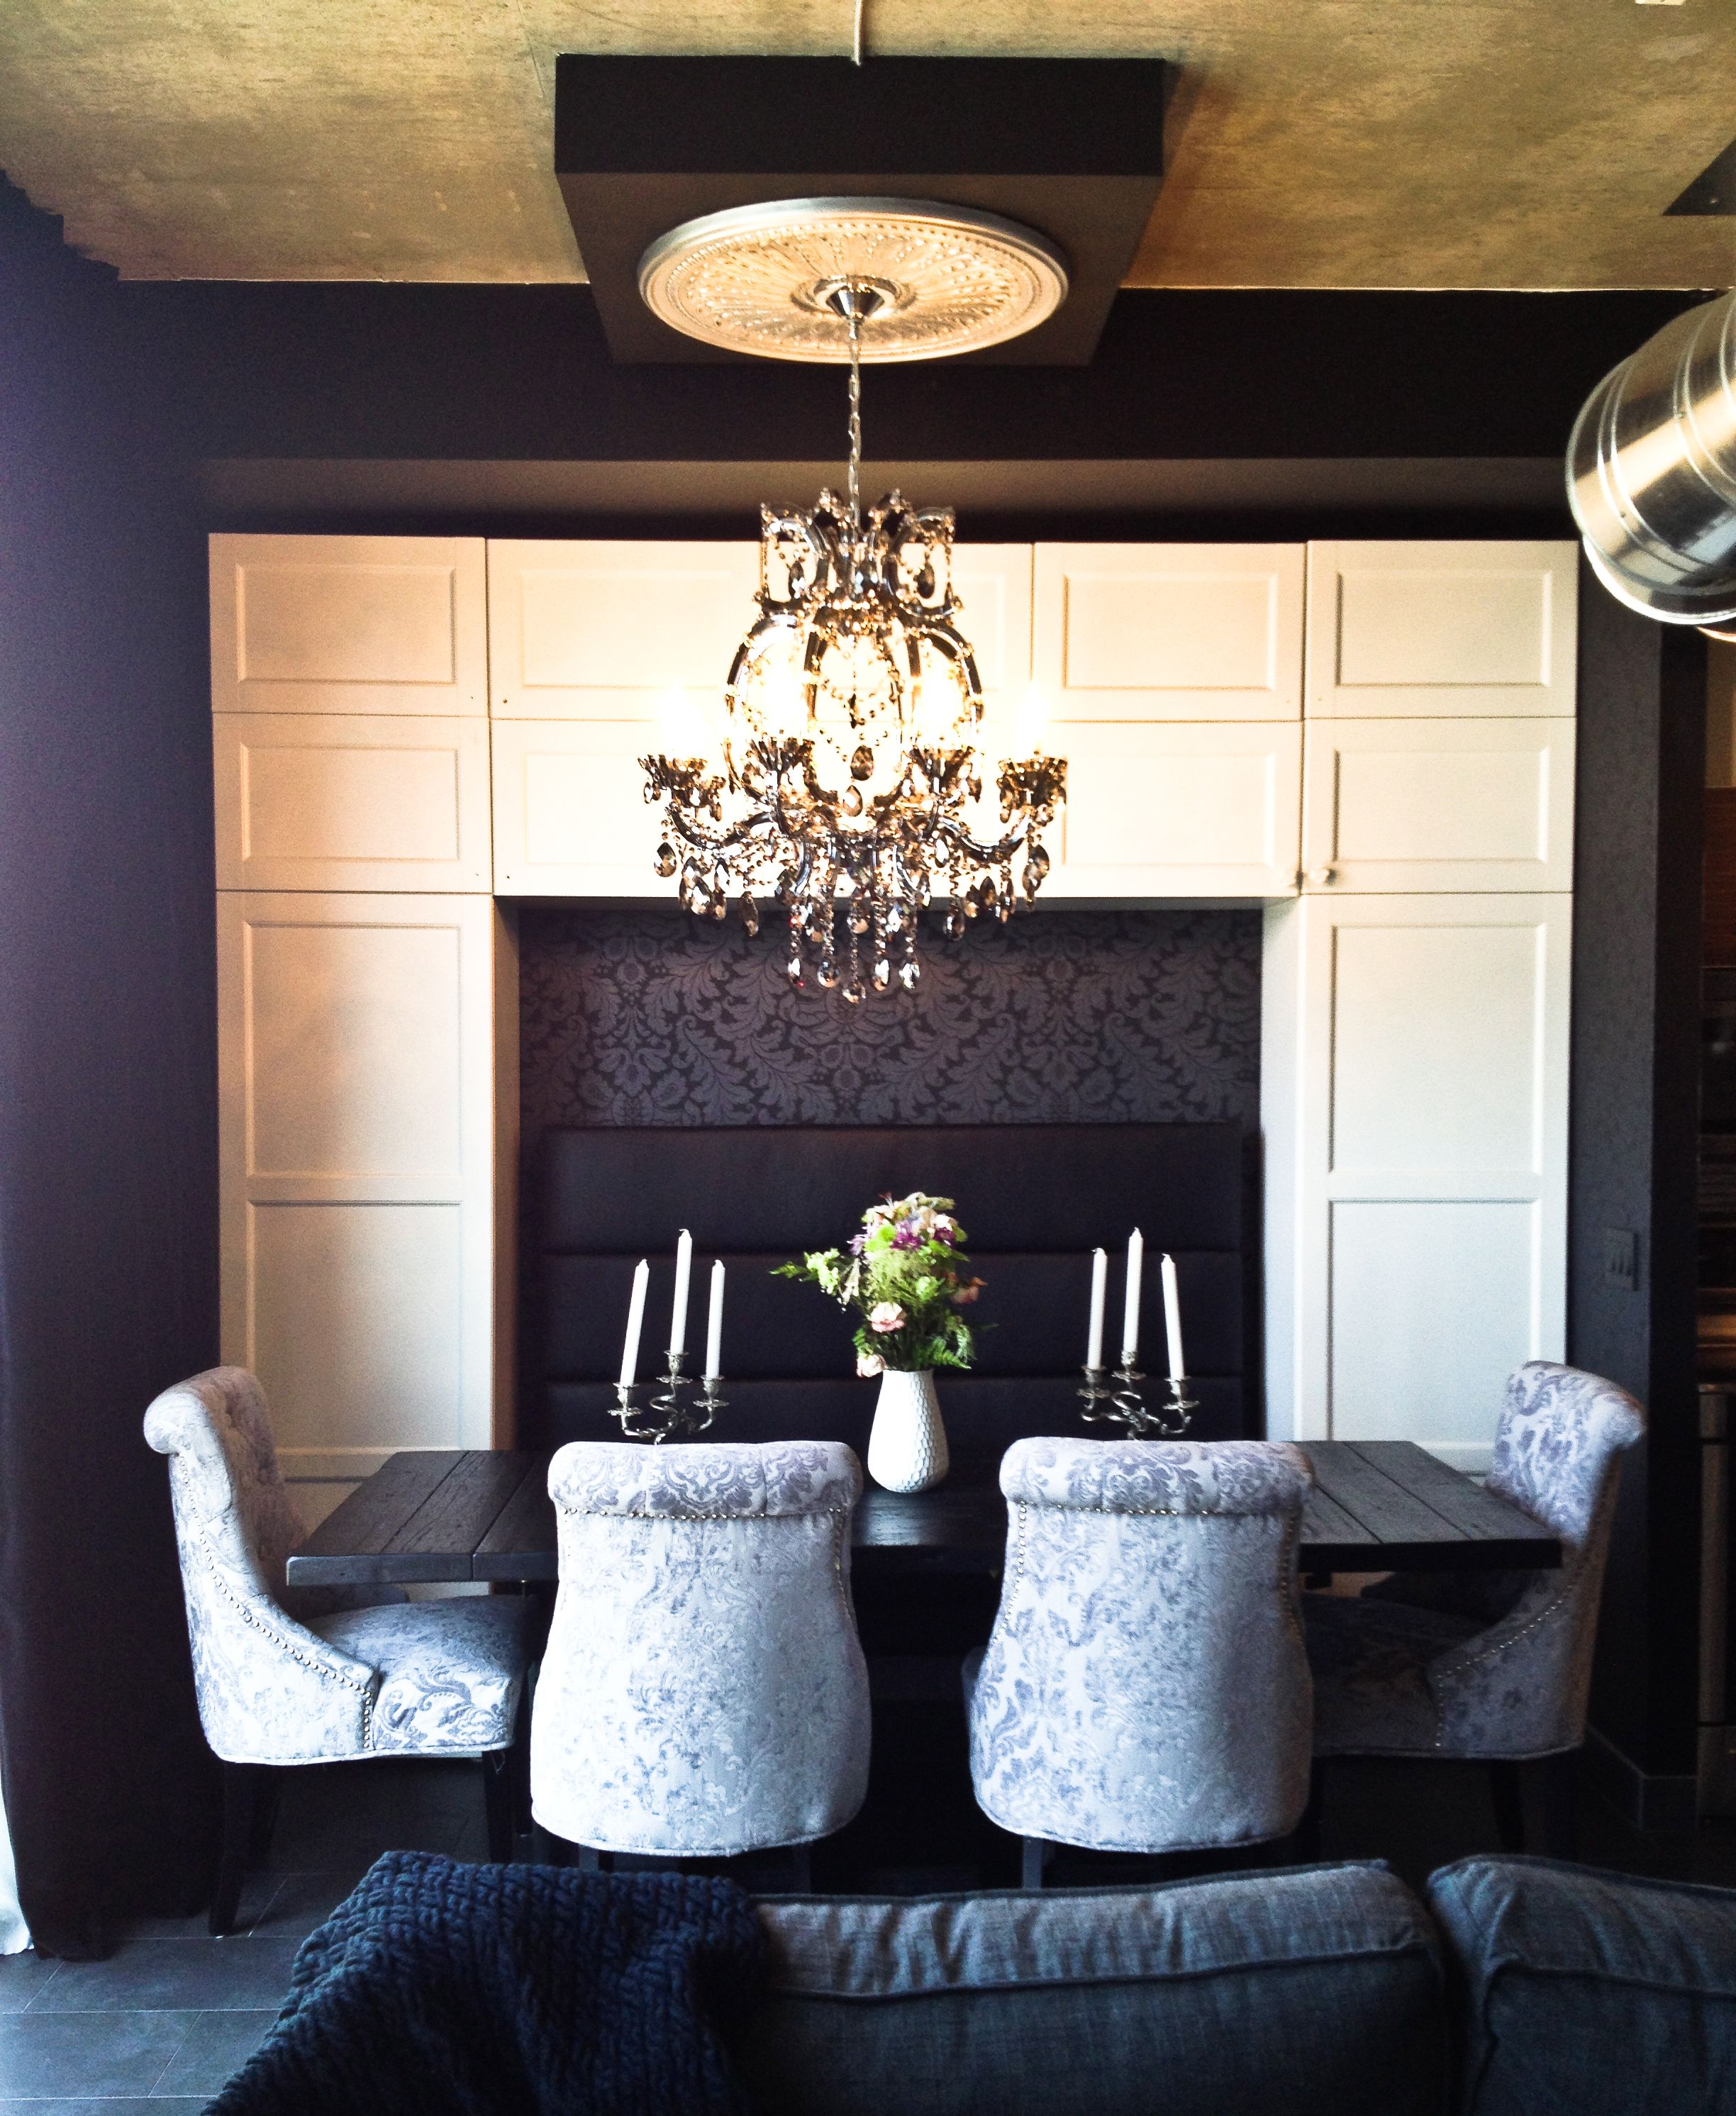 #Interior #Design #Wallpaper #Gothic #Black #Luxe #Glam #Decor